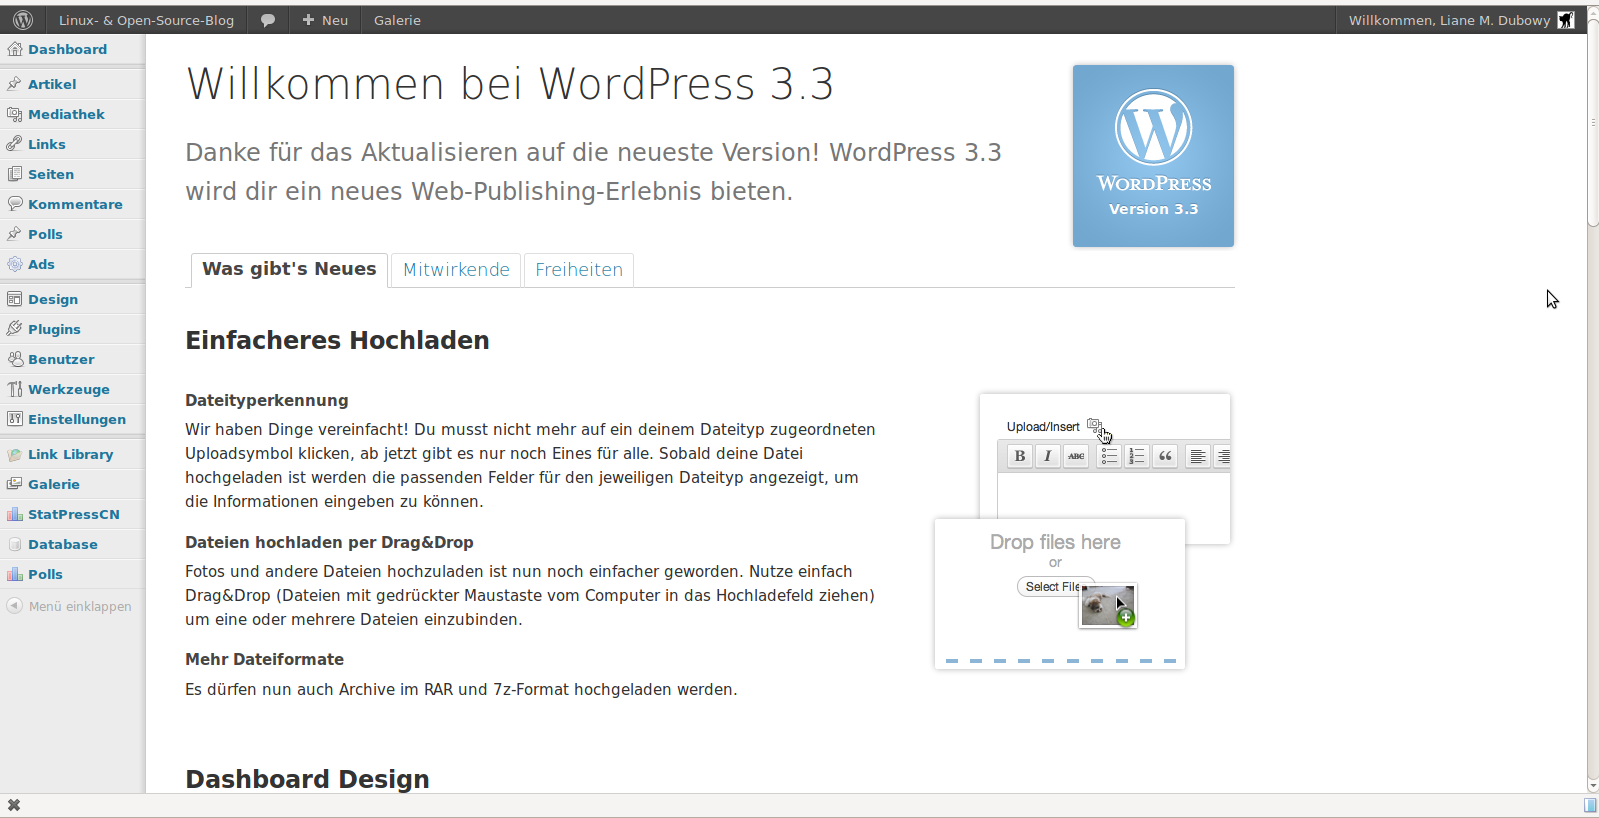 Wordpress 3.3 nach dem Update